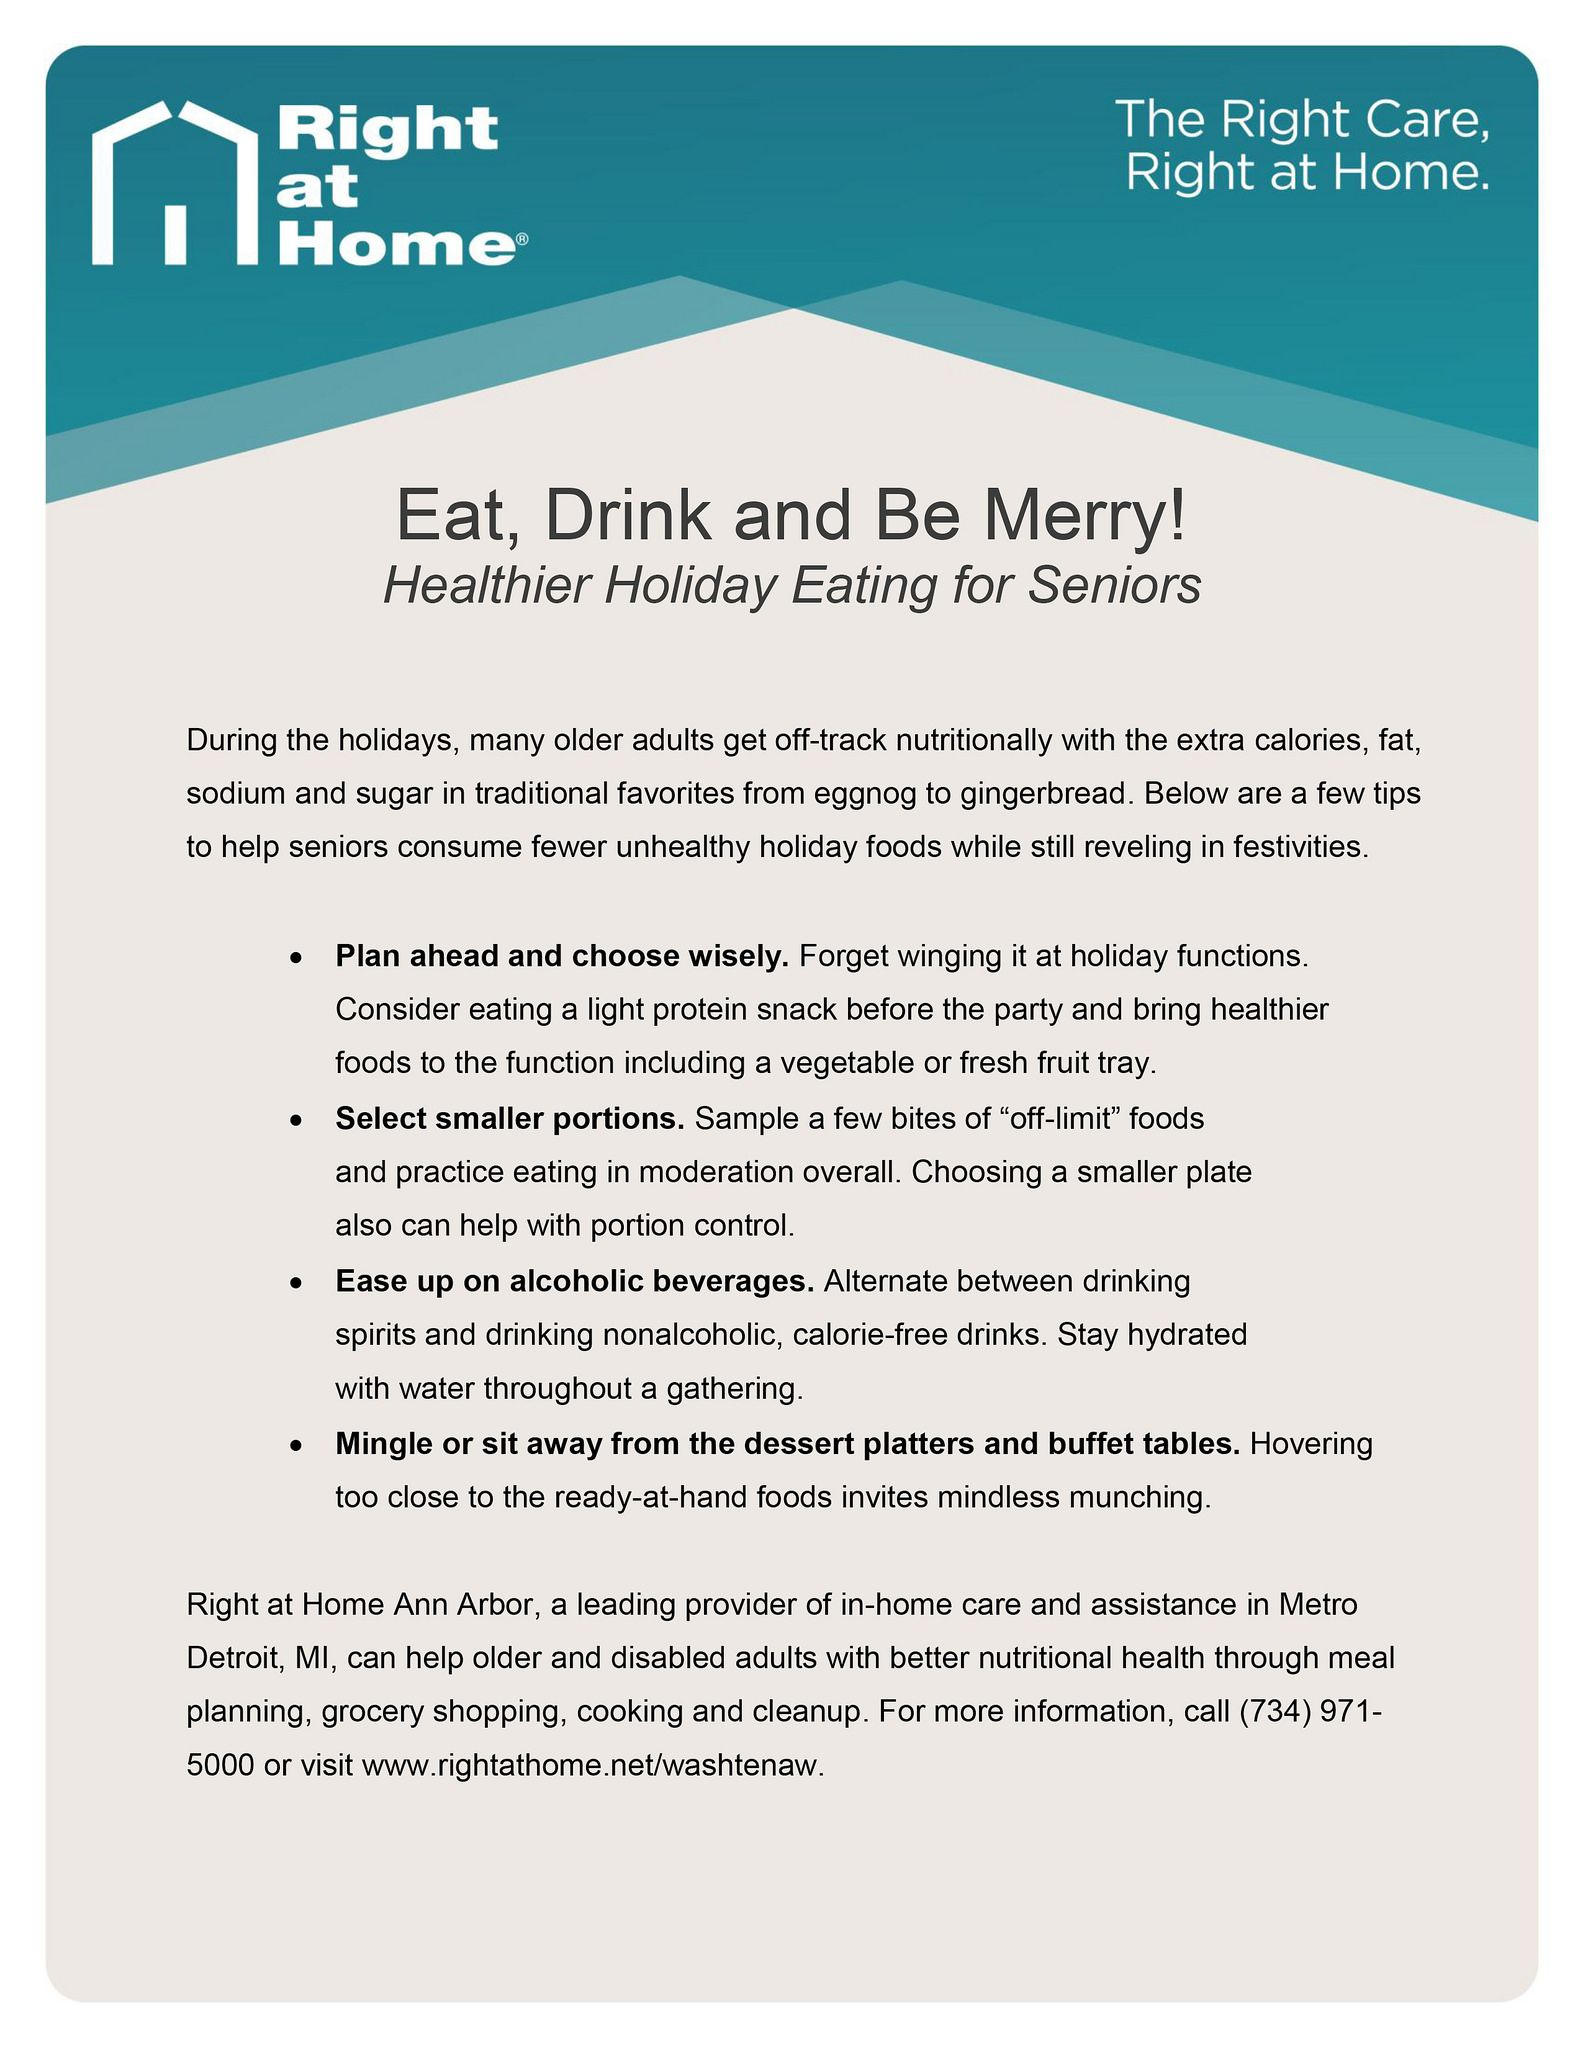 #HomeCare Company #AnnArbor MI - Tips for Eating Healthier During the Holidays   Learn quick tips on how to eat healthier during the holidays in this Ann Arbor Home Care tip sheet. For more articles and information about #seniorcare, home care, and #seniorhealth, visit the Right at Home Ann Arbor blog at www.rightathome.net/washtenaw/blog/. #homehealthcare #holidayeating